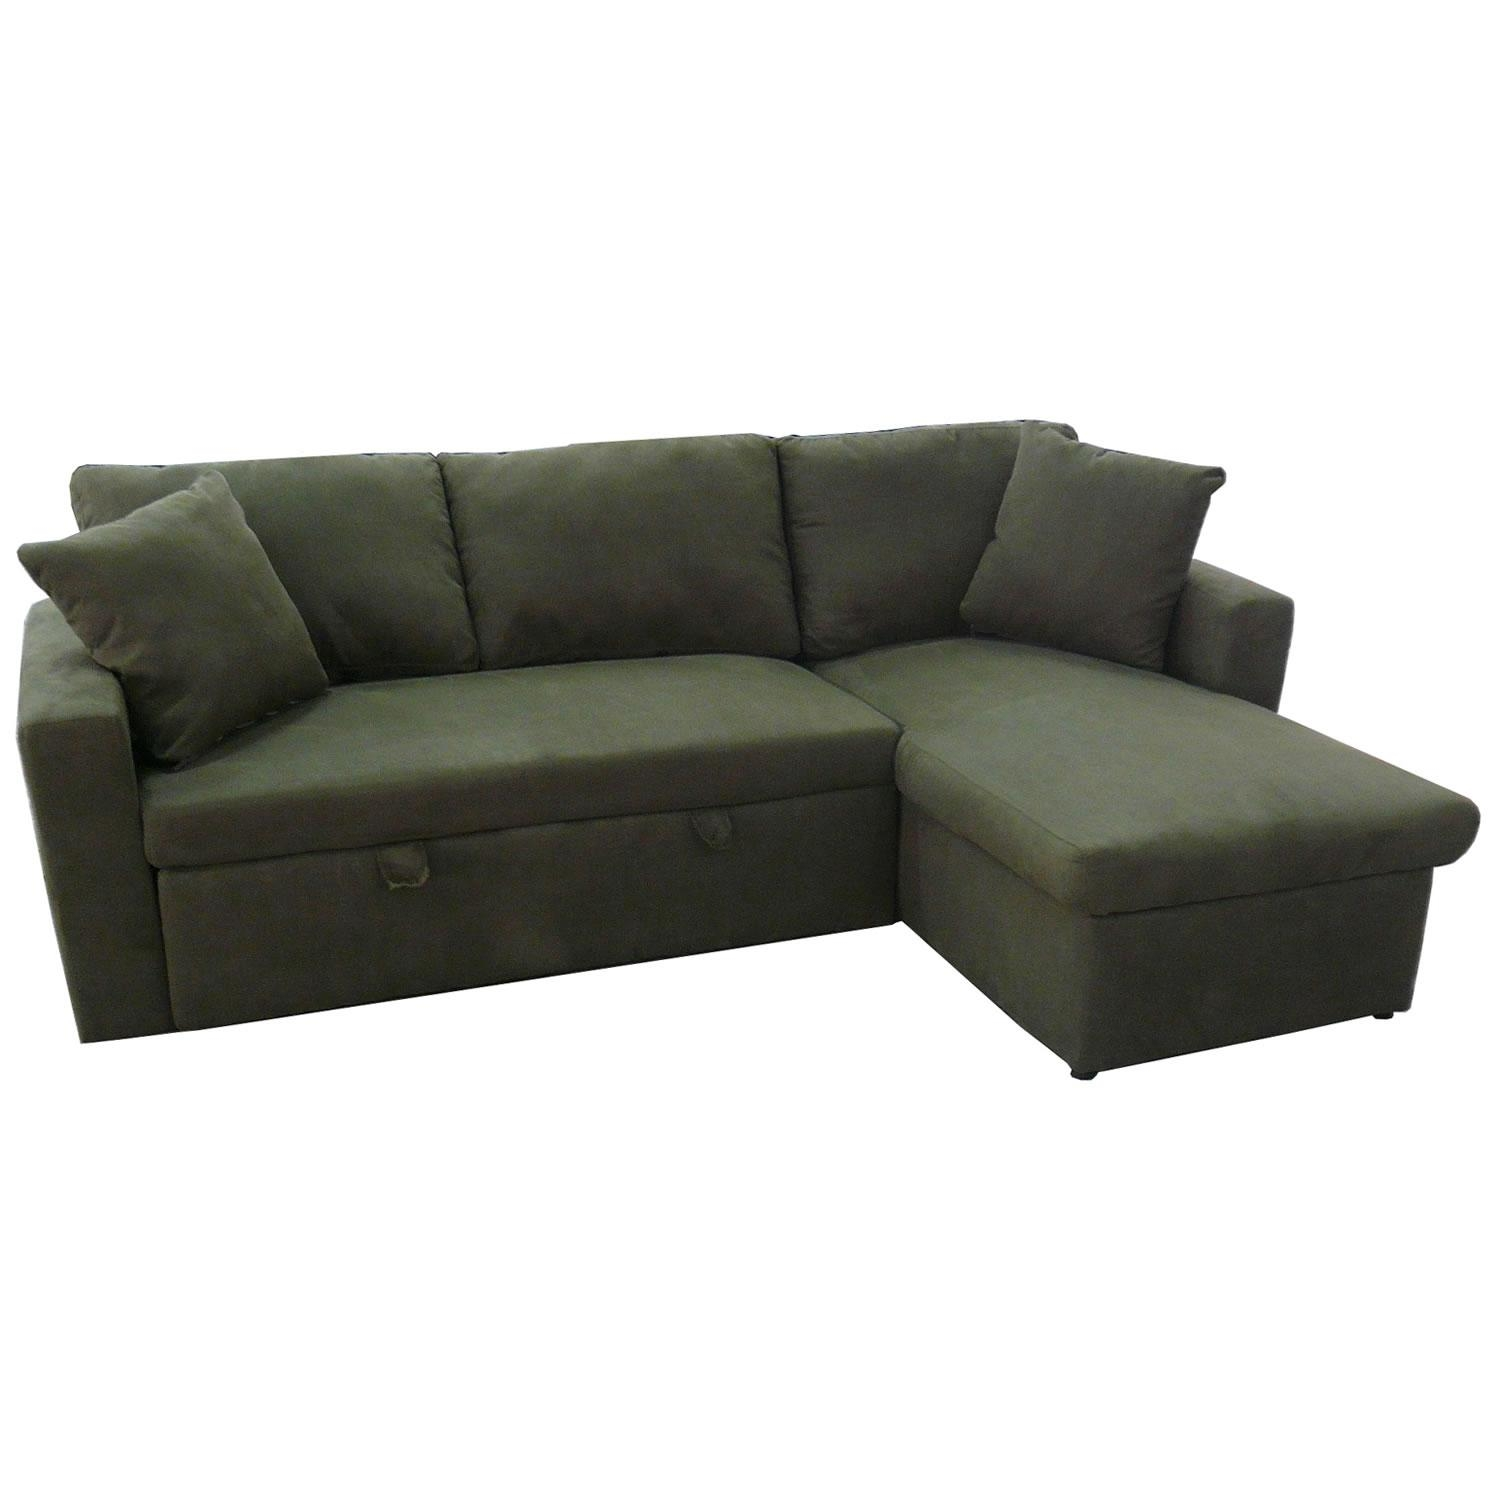 Sofas : Marvelous 2 Seater Corner Sofa Sofa Couch Bed Grey Leather Pertaining To Sofas With Beds (View 17 of 22)